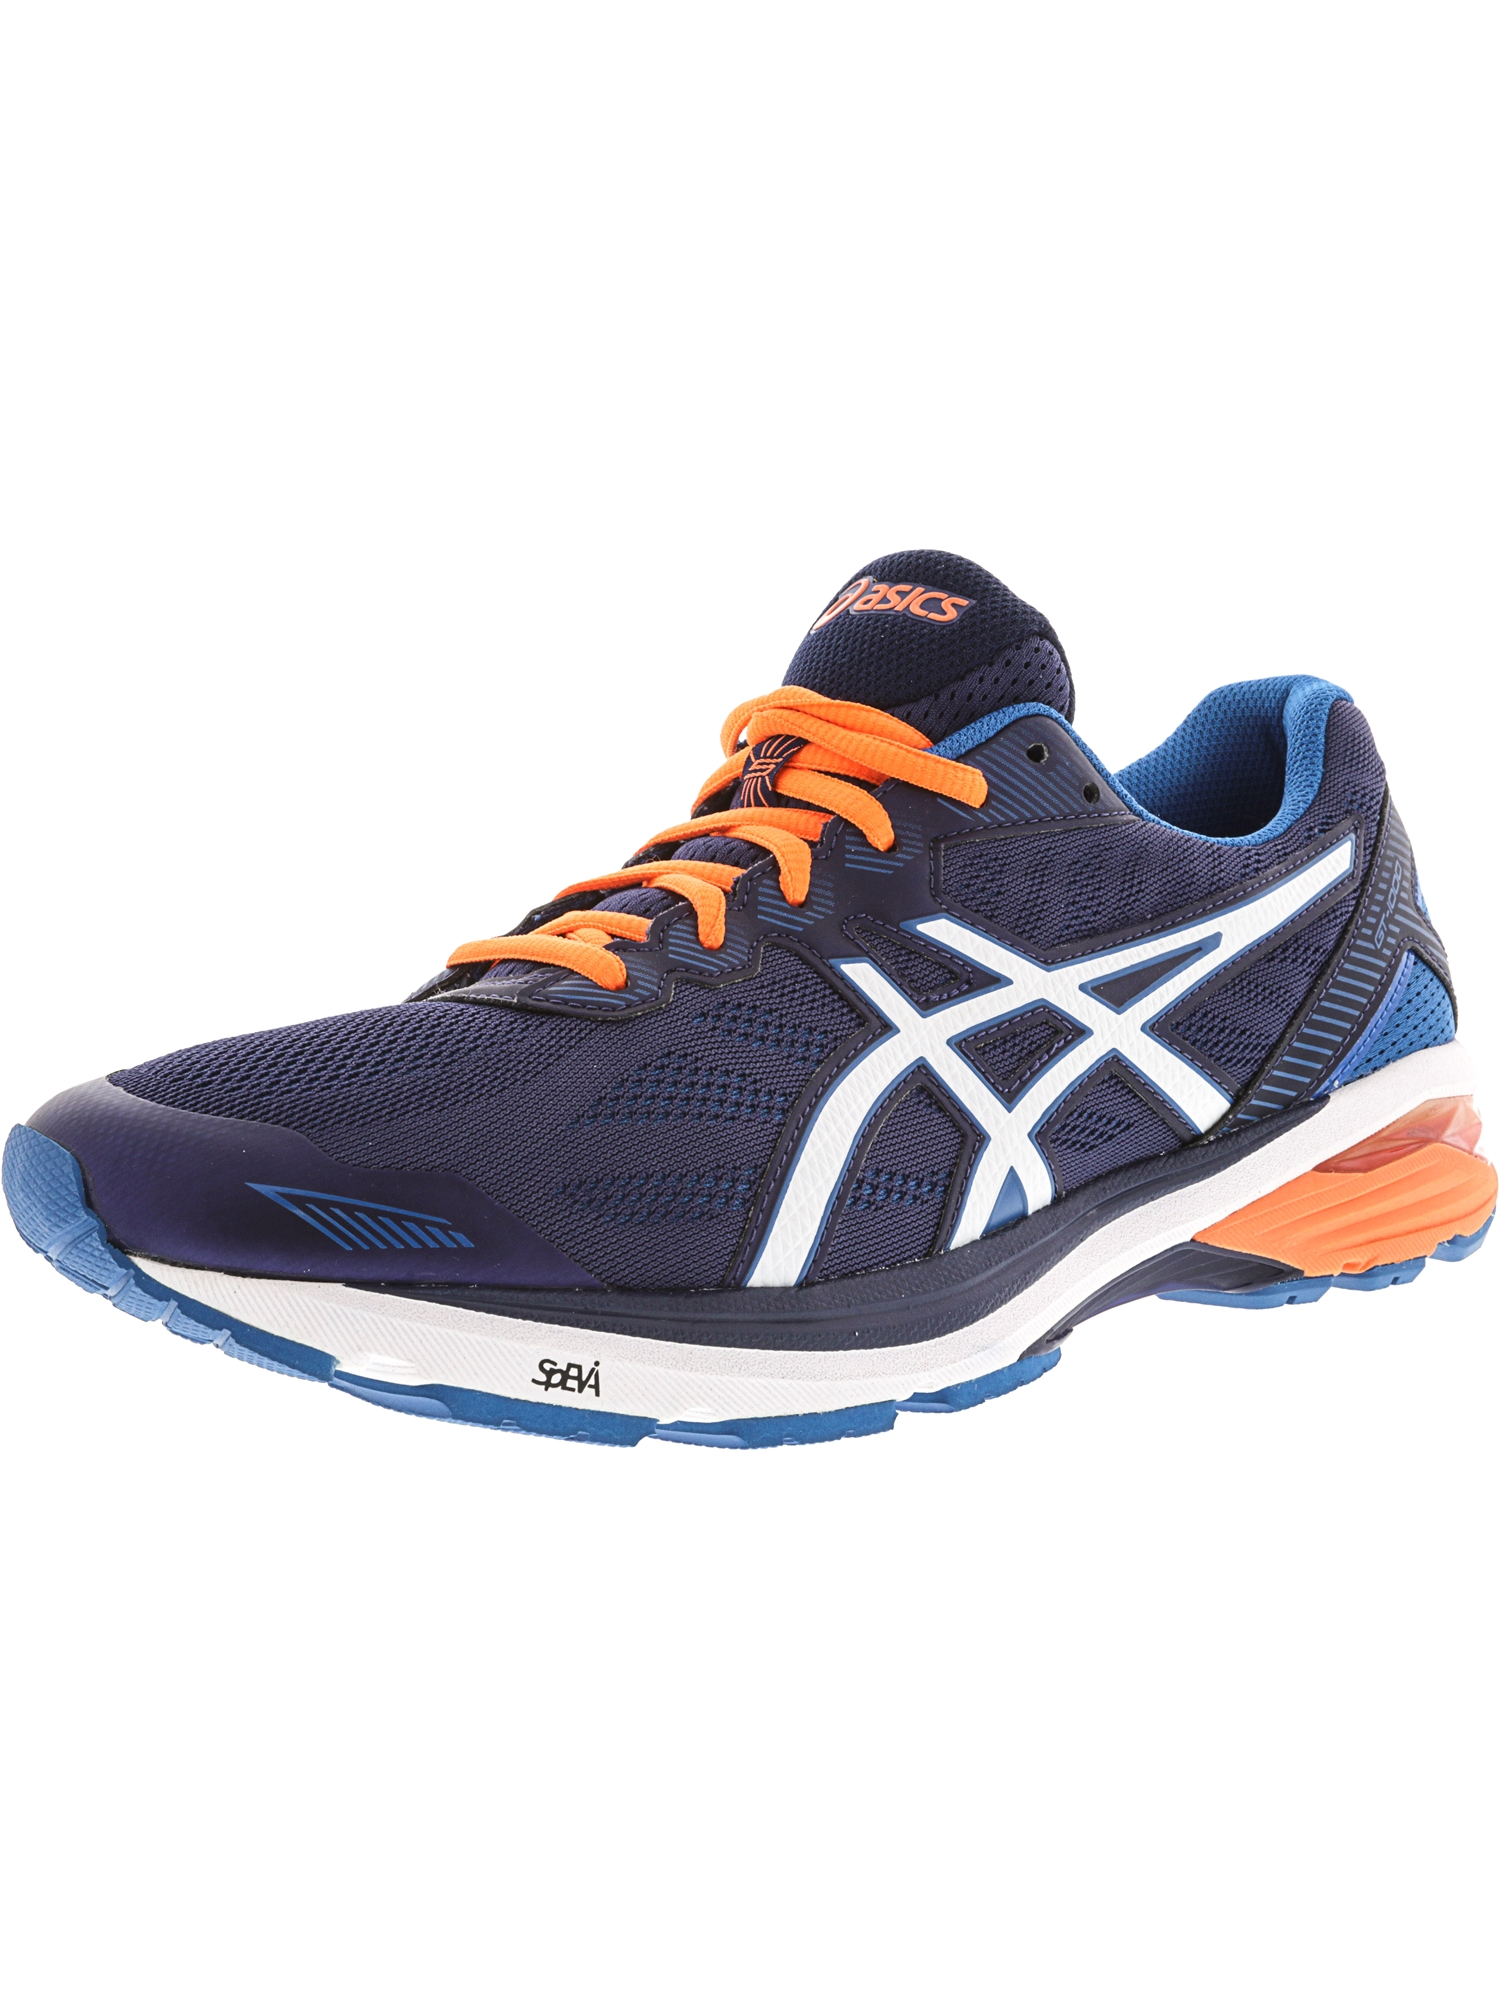 ASICS Asics Men's Gt 1000 5 Indigo Blue Snow Hot Orange Ankle High Running Shoe 7M